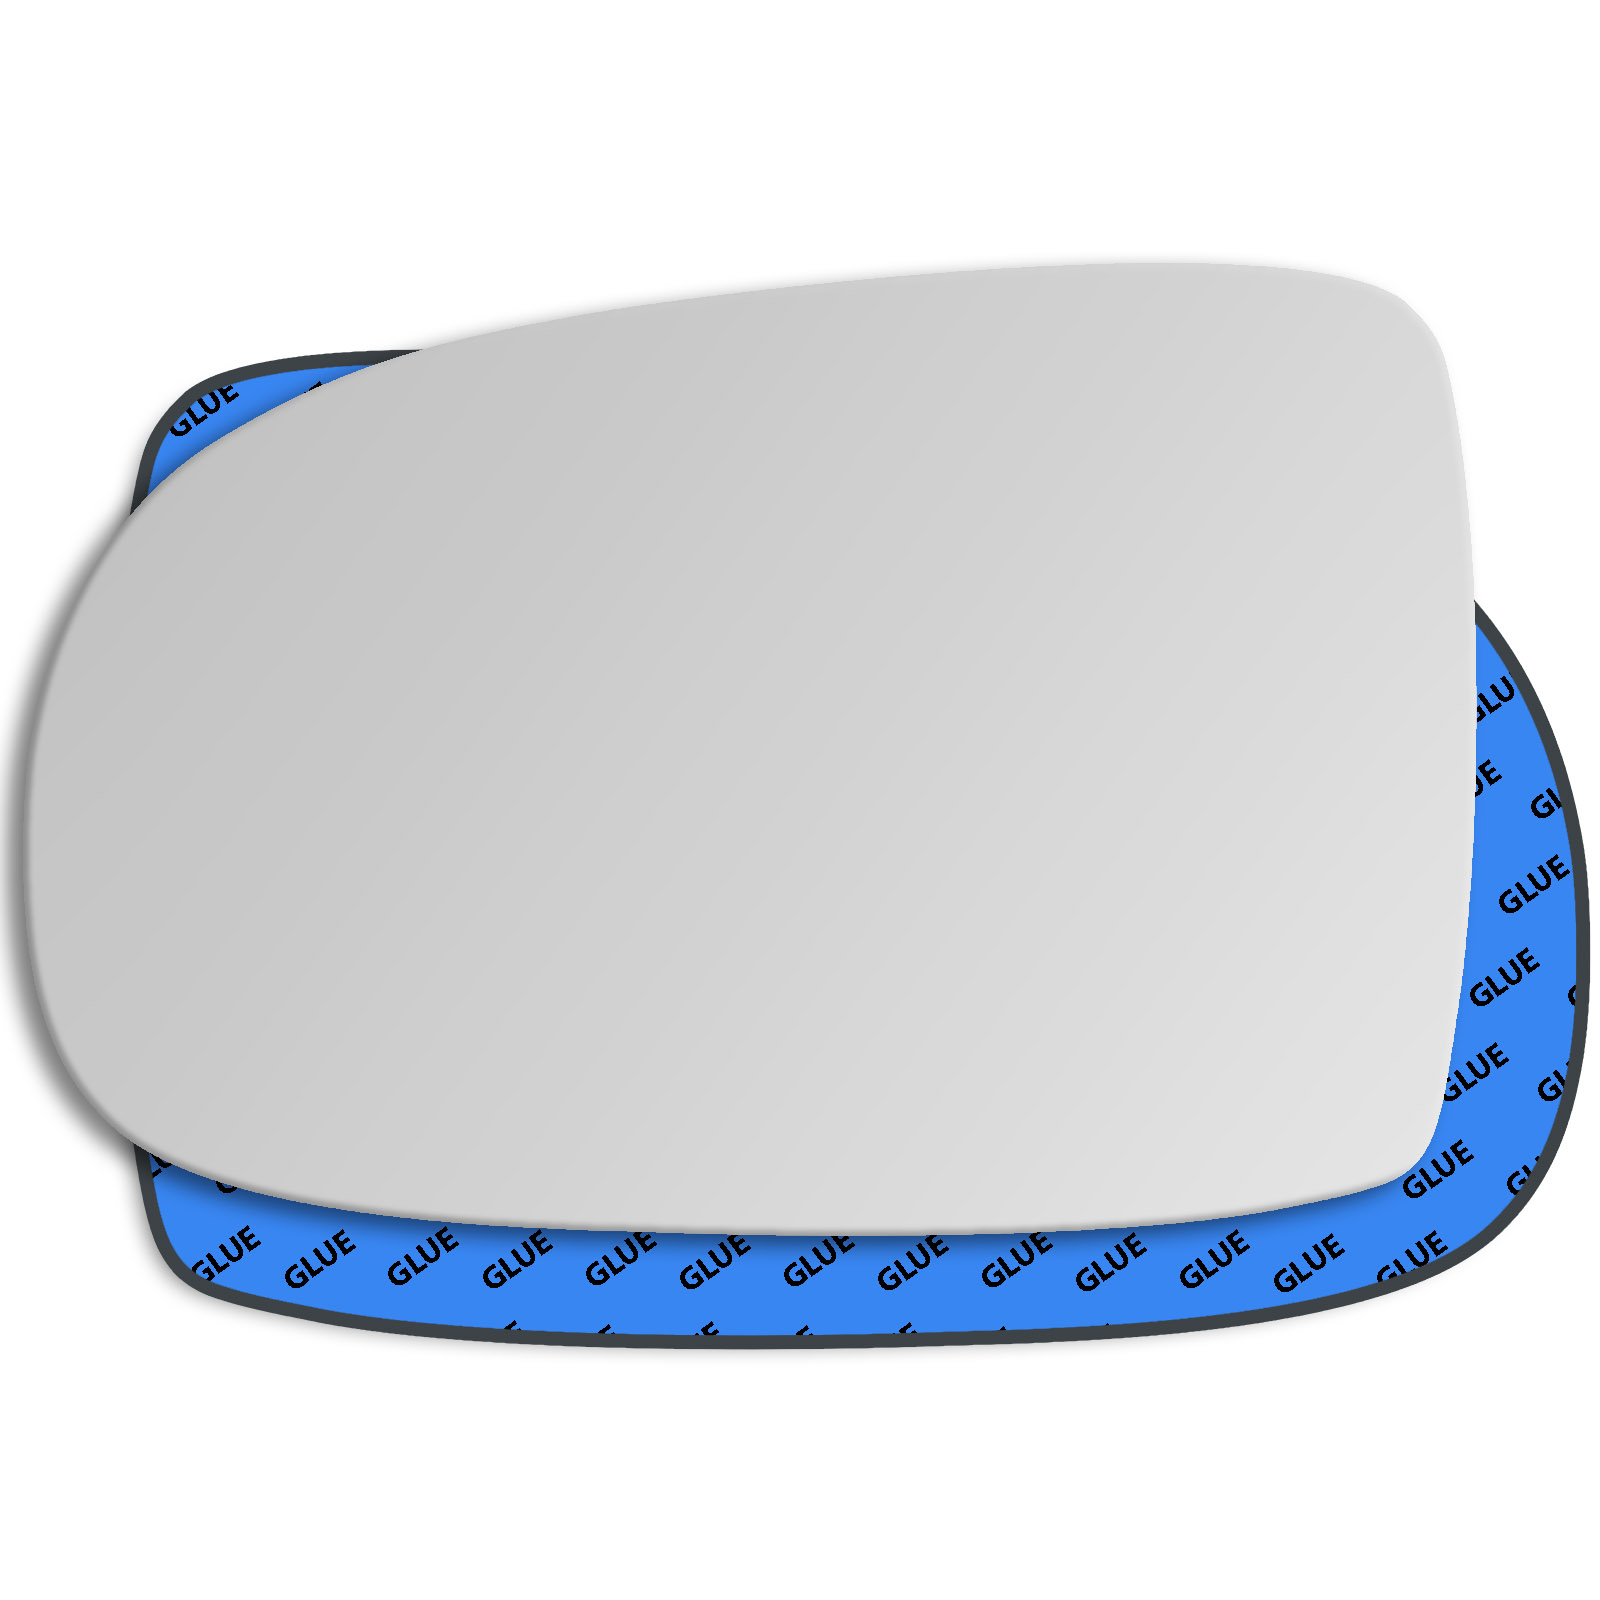 LH REPLACEMENT MIRROR GLASS WITH BASE PLATE TO FIT Vauxhall Corsa 06